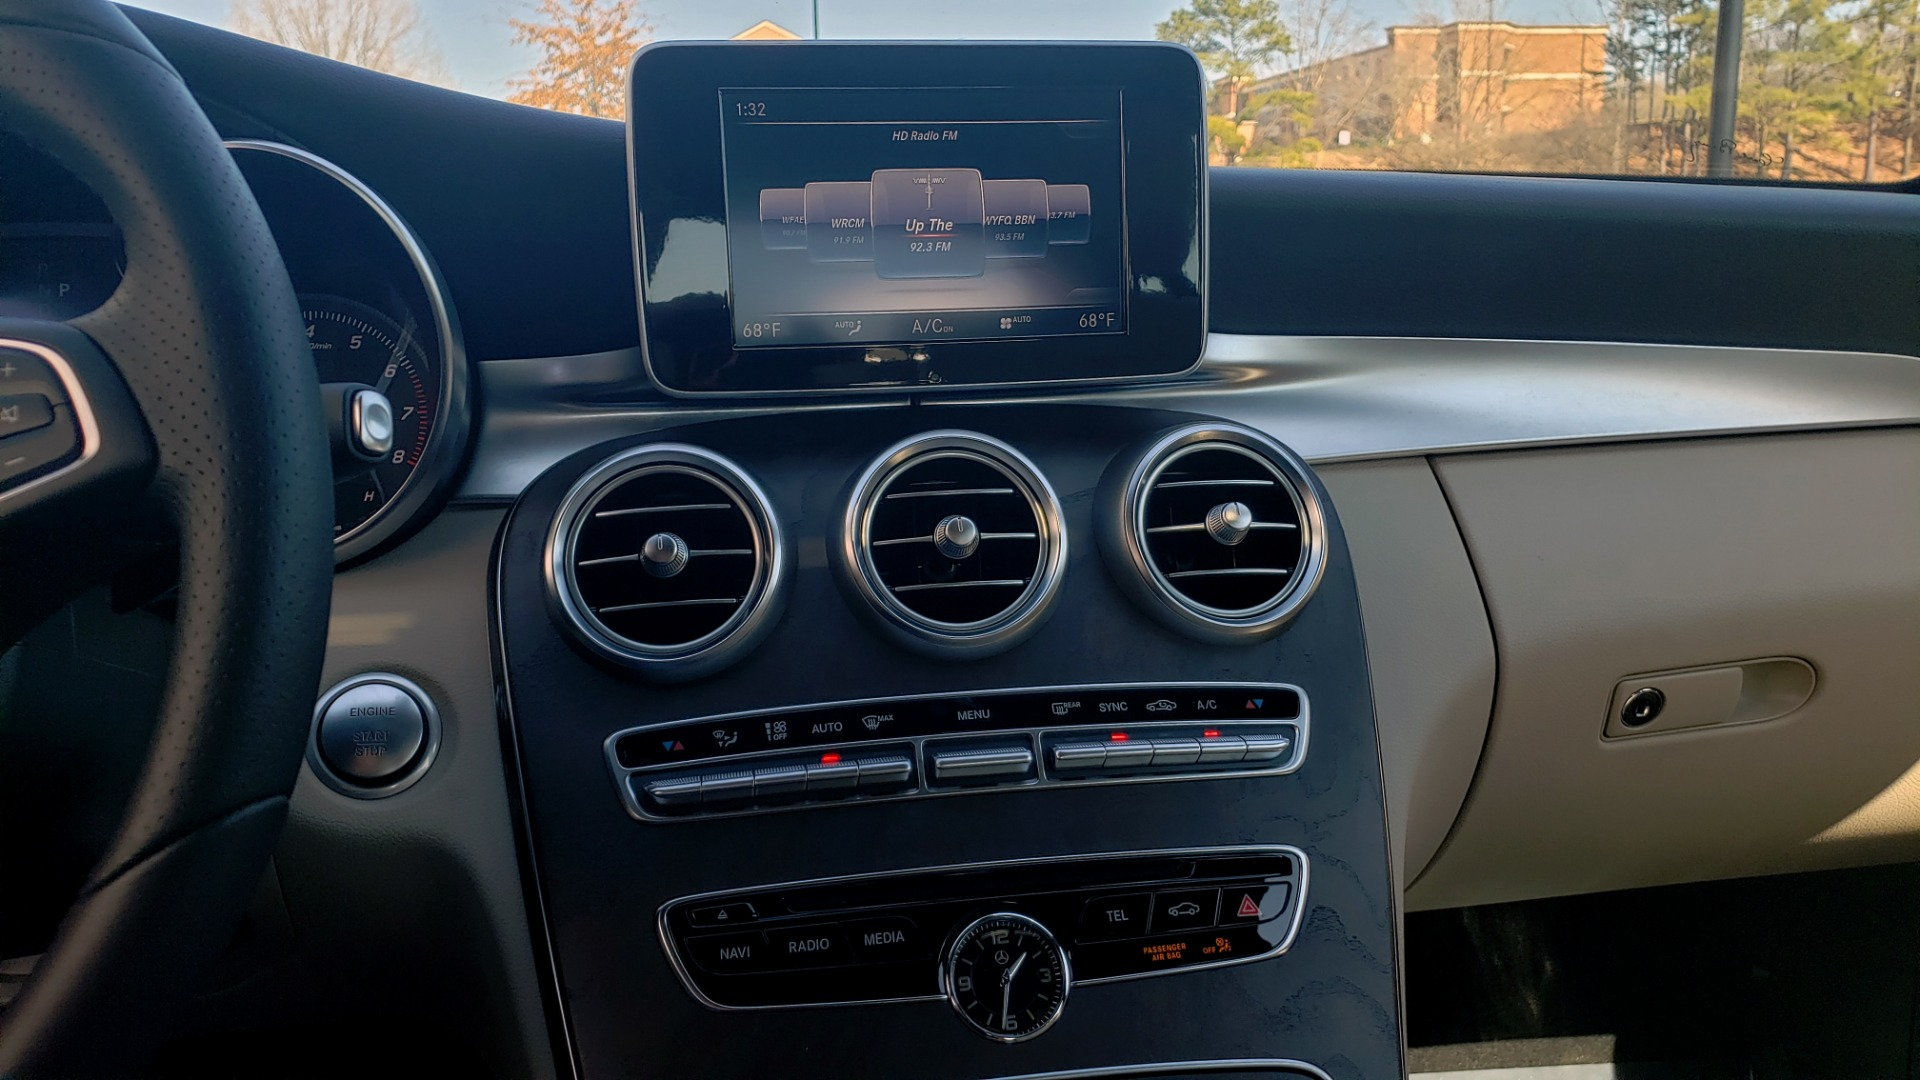 Used 2018 Mercedes-Benz C-CLASS C 300 PREMIUM / SUNROOF / BURMESTER / BSM / REARVIEW for sale $23,995 at Formula Imports in Charlotte NC 28227 38